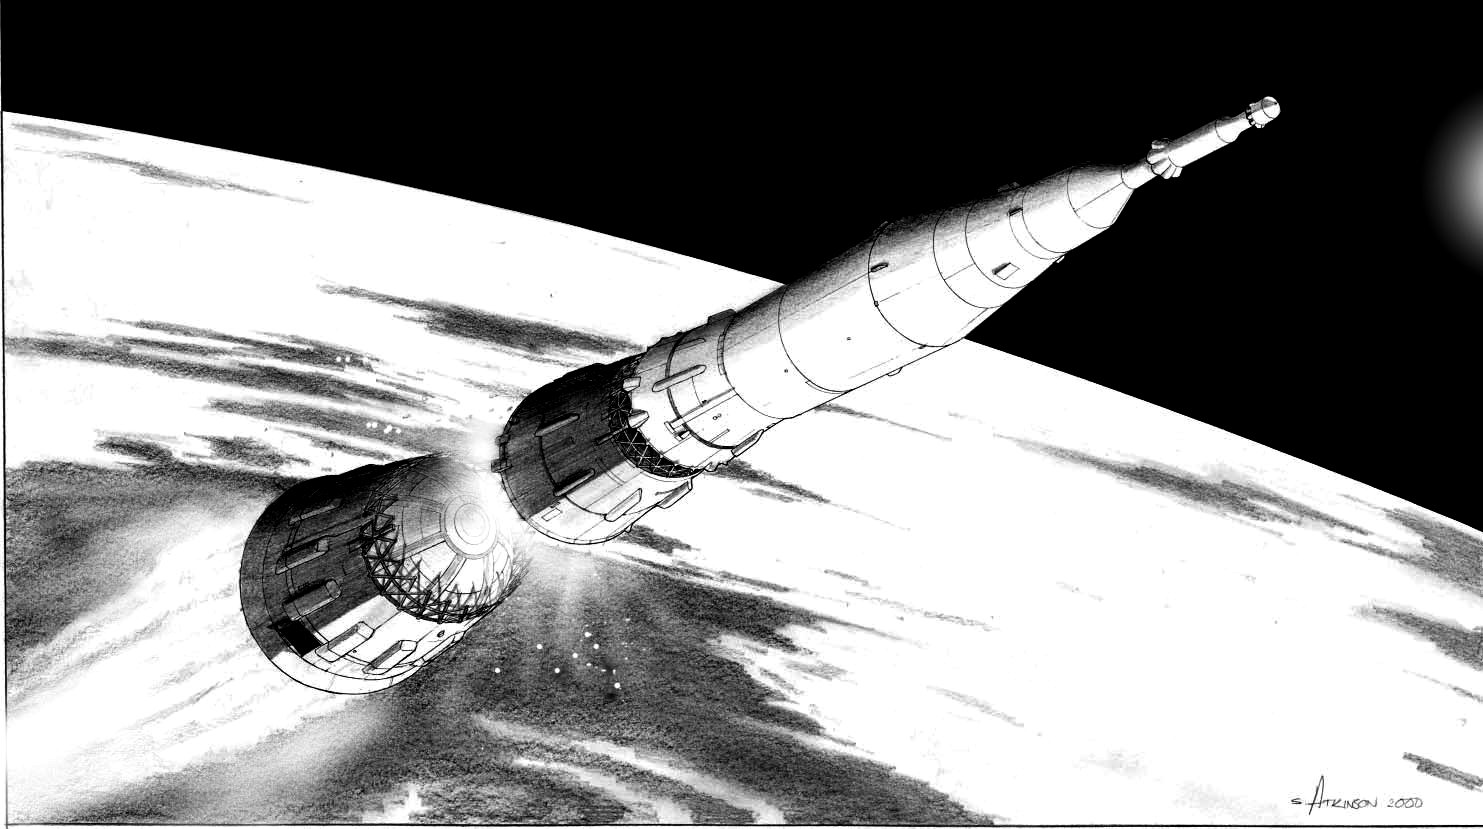 drawings of space rockets high power rocketry black and white space drawings rockets space of drawings